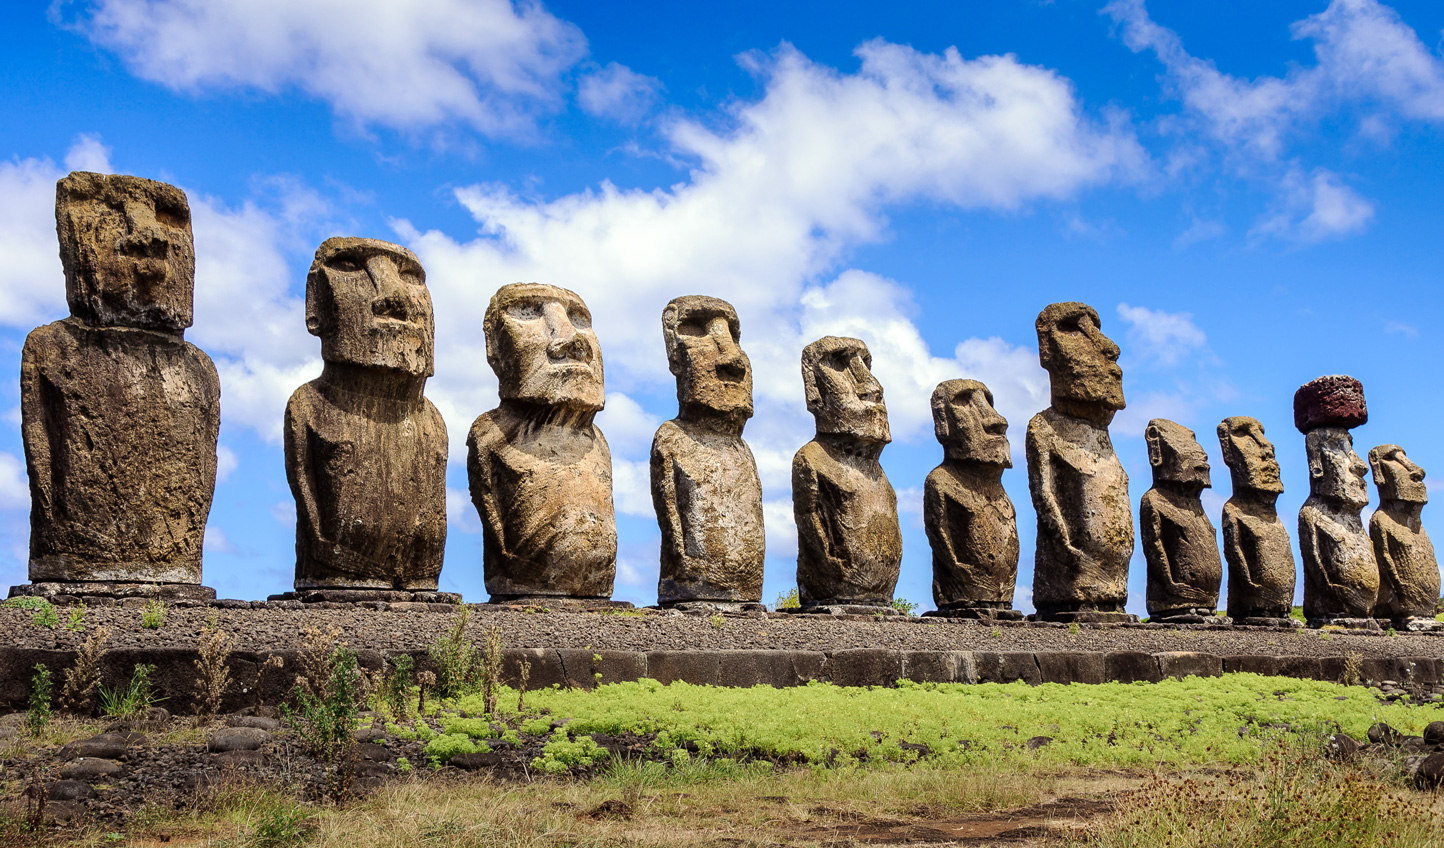 See the renowned Moai Carvings that make Easter Island famous